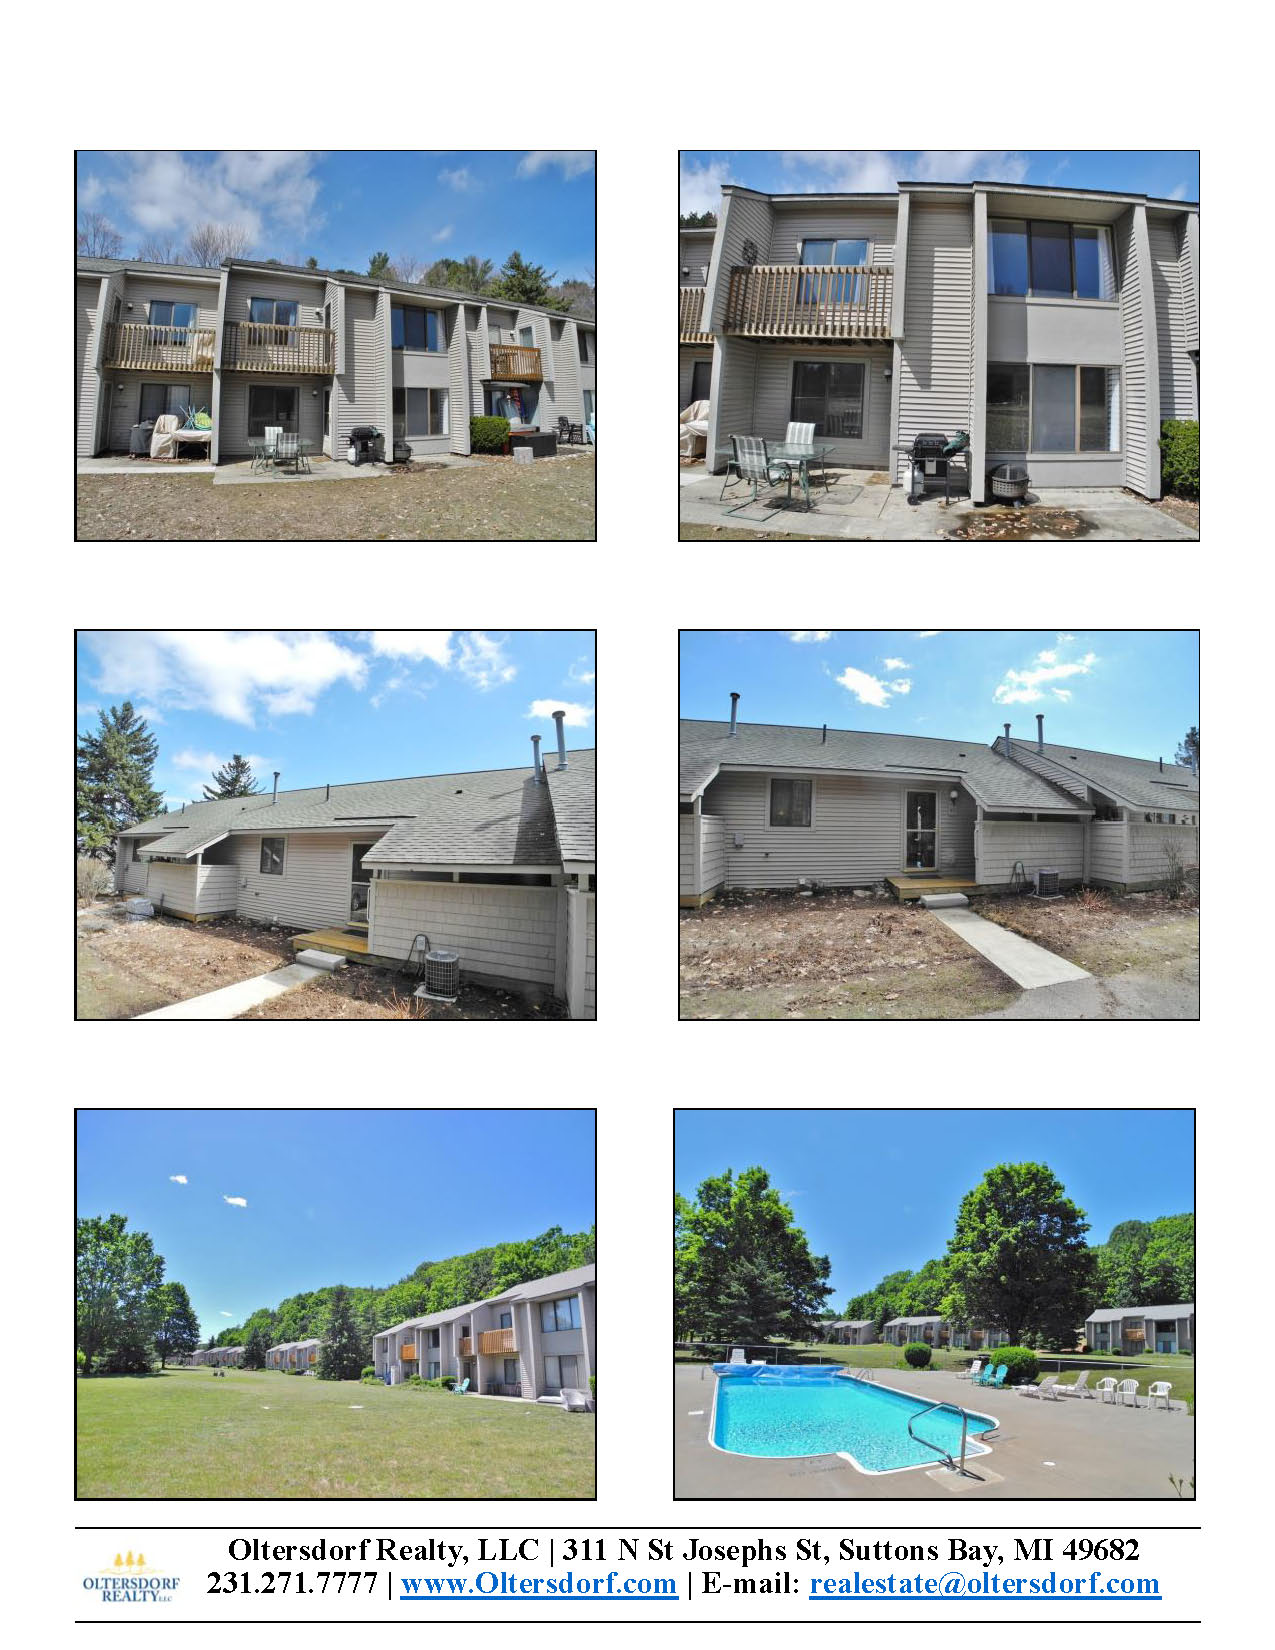 11255 E Fort Road Marketing Packet, Suttons Bay - for Sale by Oltersdorf Realty LLC (2).jpg